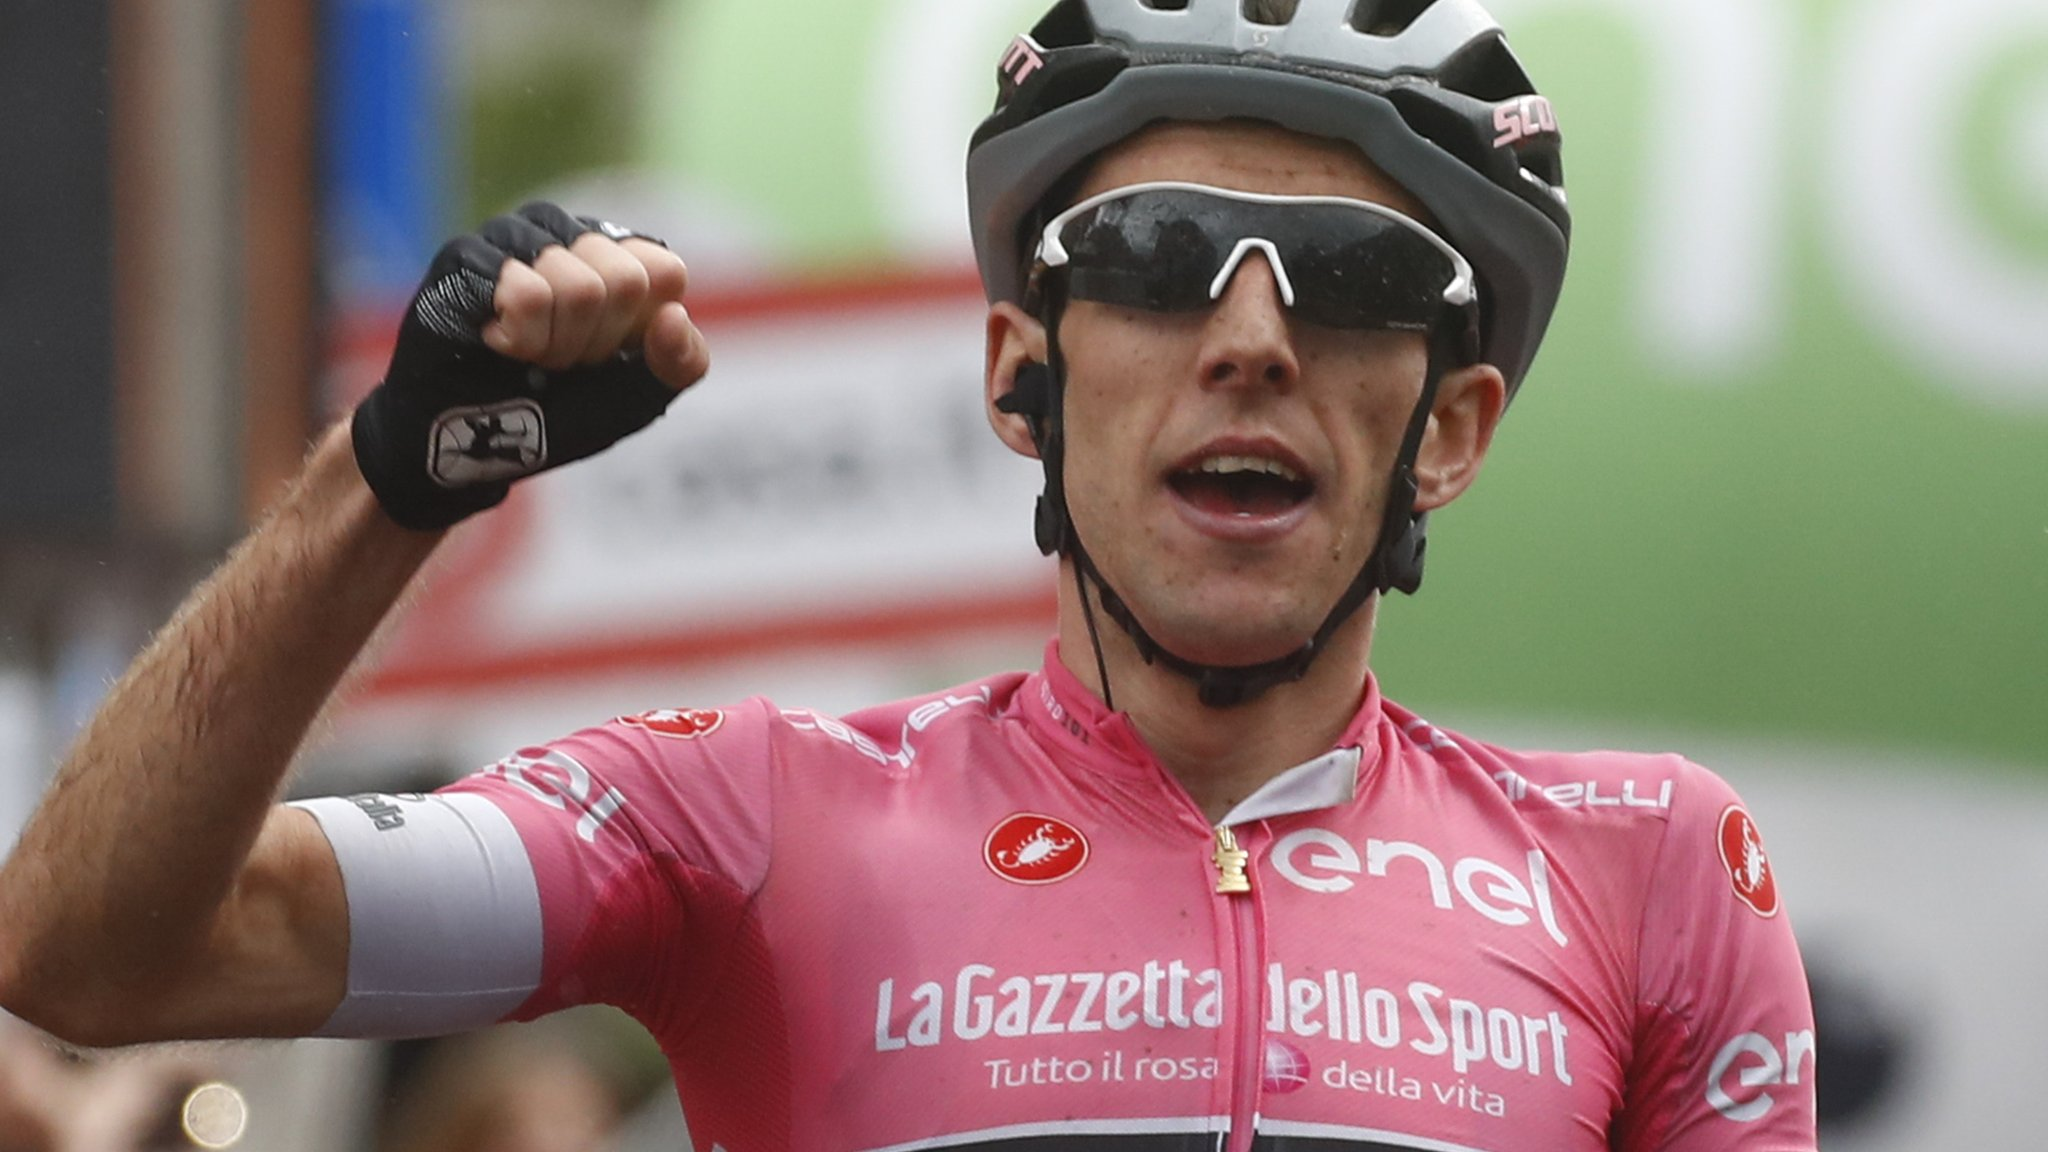 Giro d'Italia: Simon Yates extends lead with fine solo win on stage 15